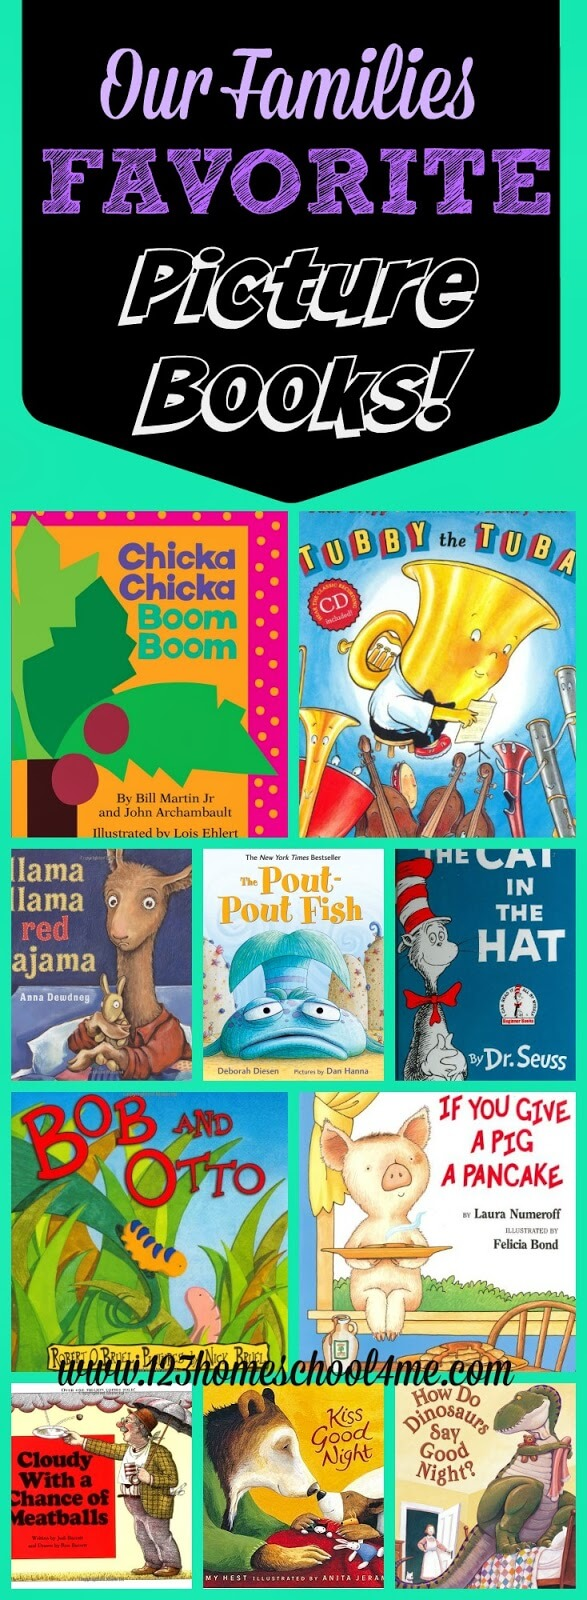 Our Families Favorite Picture Books! With so many books out there it can be really hard to find the BEST picture books for kids. Here is a list of our family favorite books - we own a copy of each and every one of these!